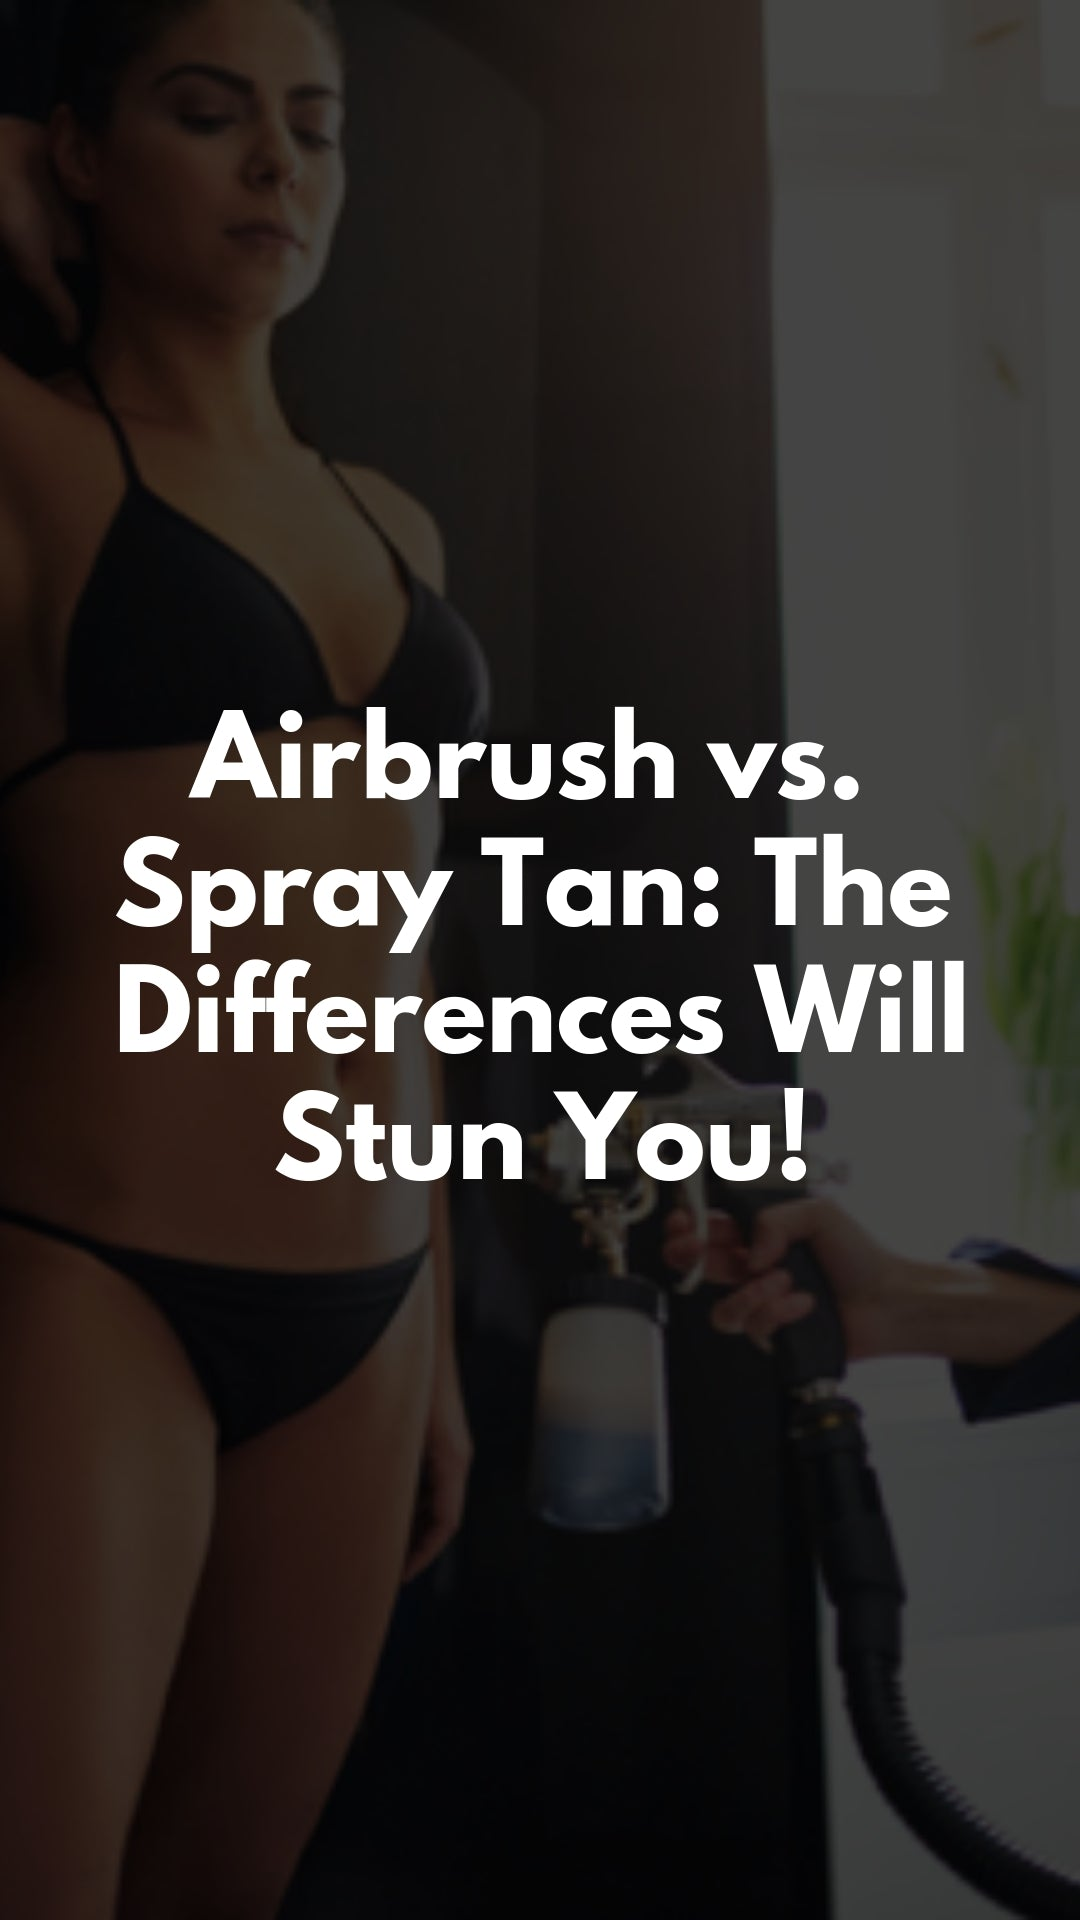 Airbrush vs. Spray Tan: The Differences Will Stun You!